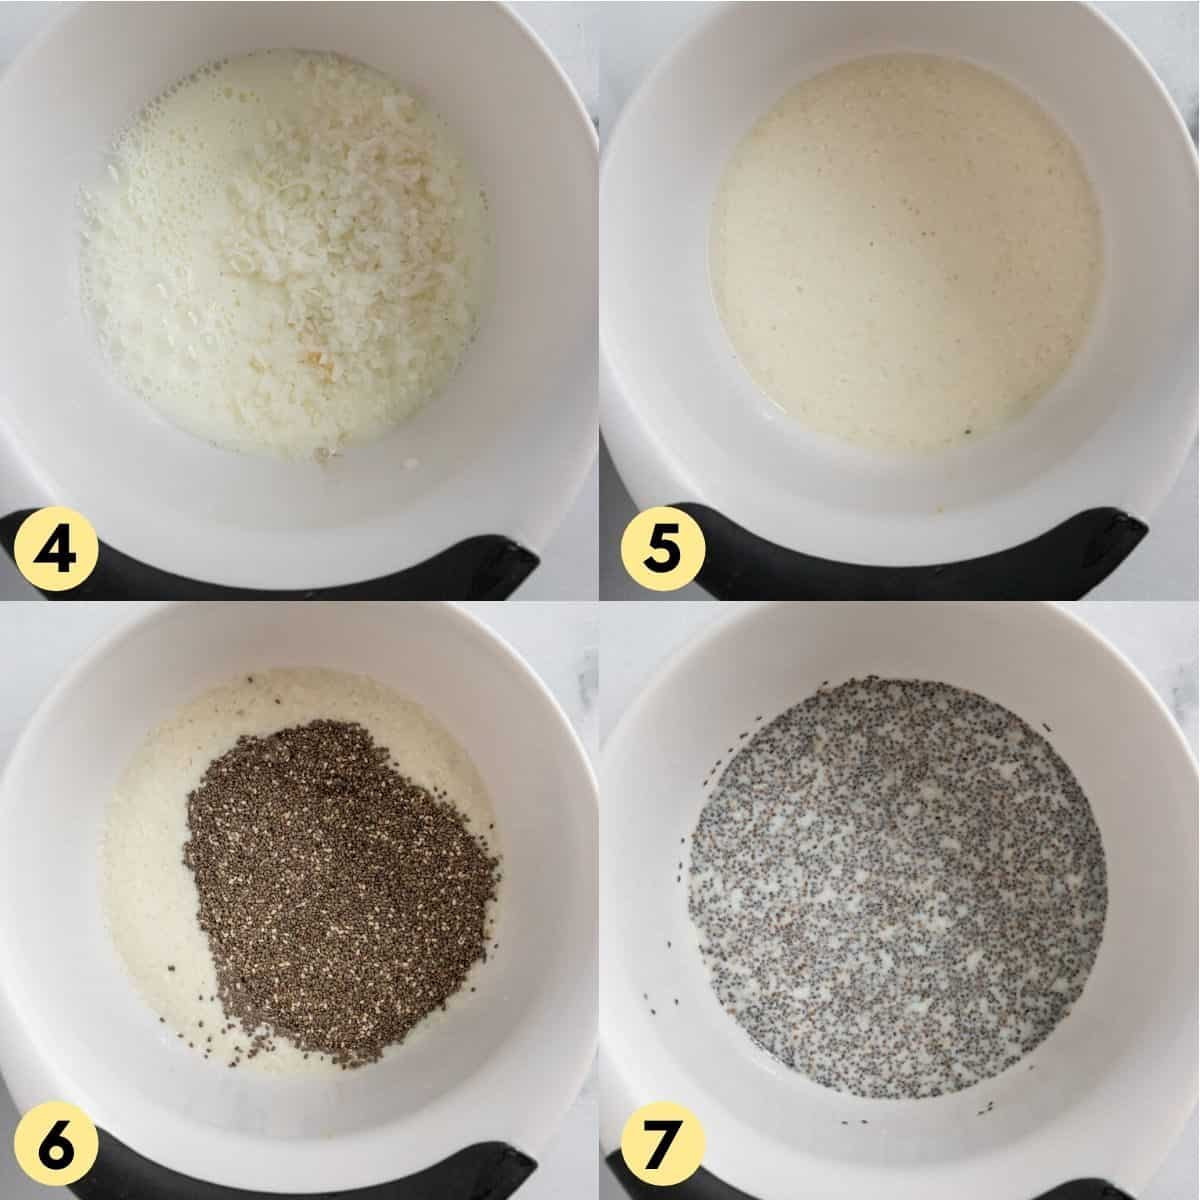 Process photos with whisked chia seeds in milk in white bowl.